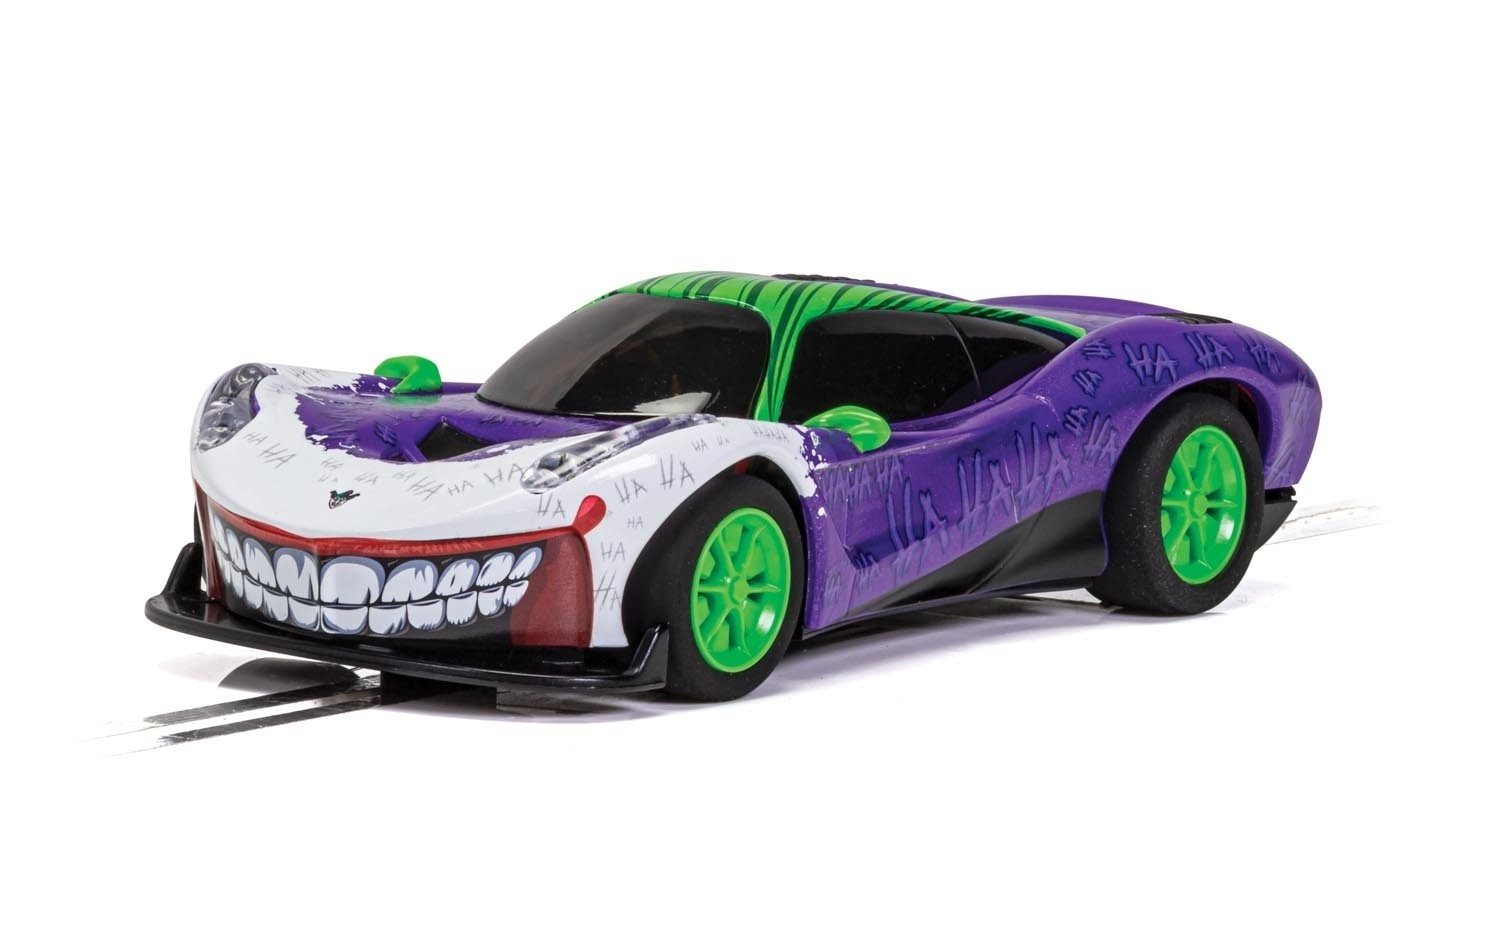 C4142 Scalextric Joker Inspired Car